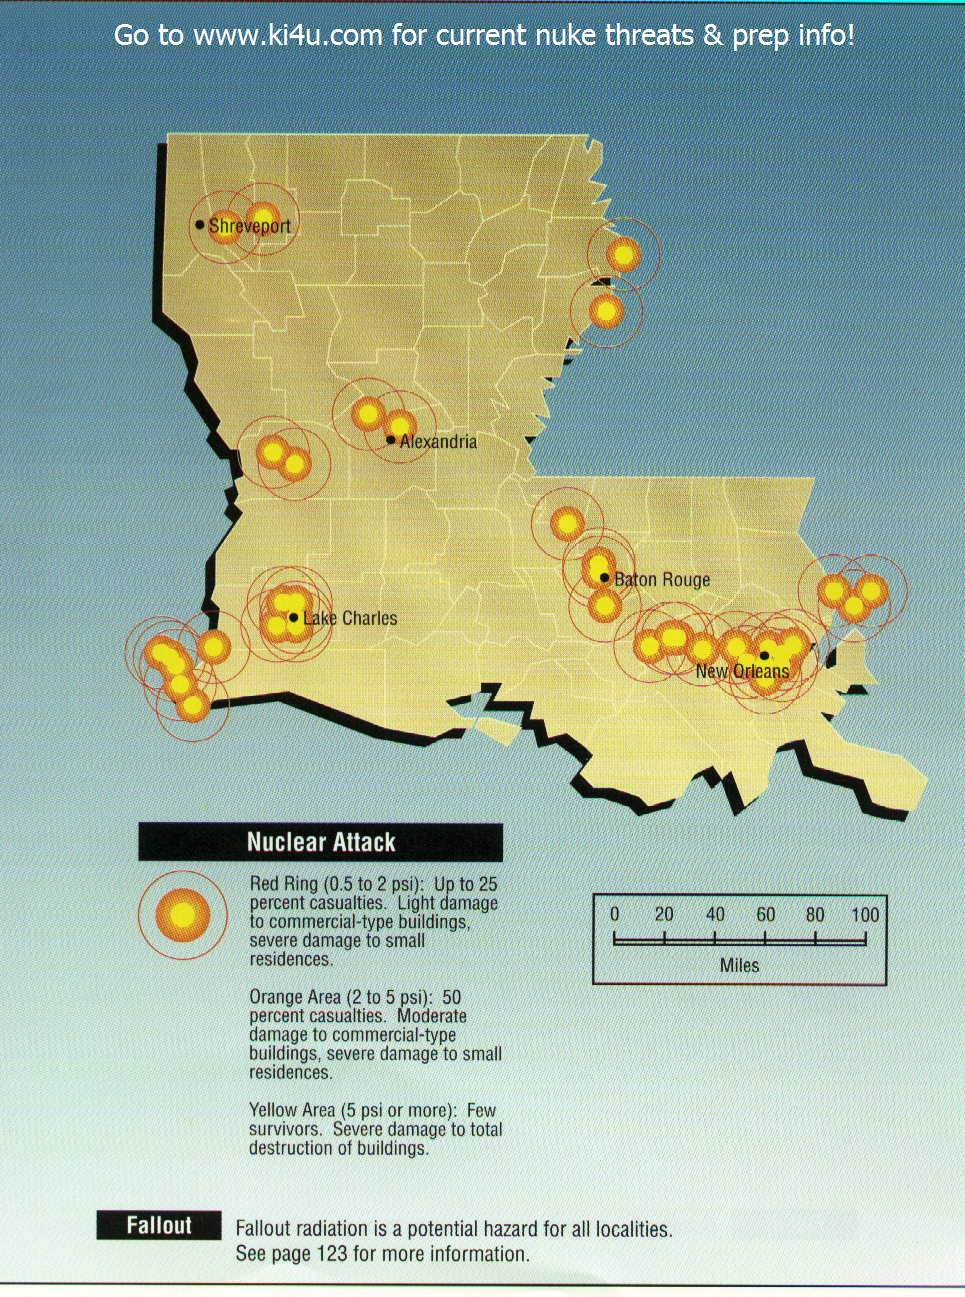 Nuclear War Fallout Shelter Survival Info for Louisiana with FEMA